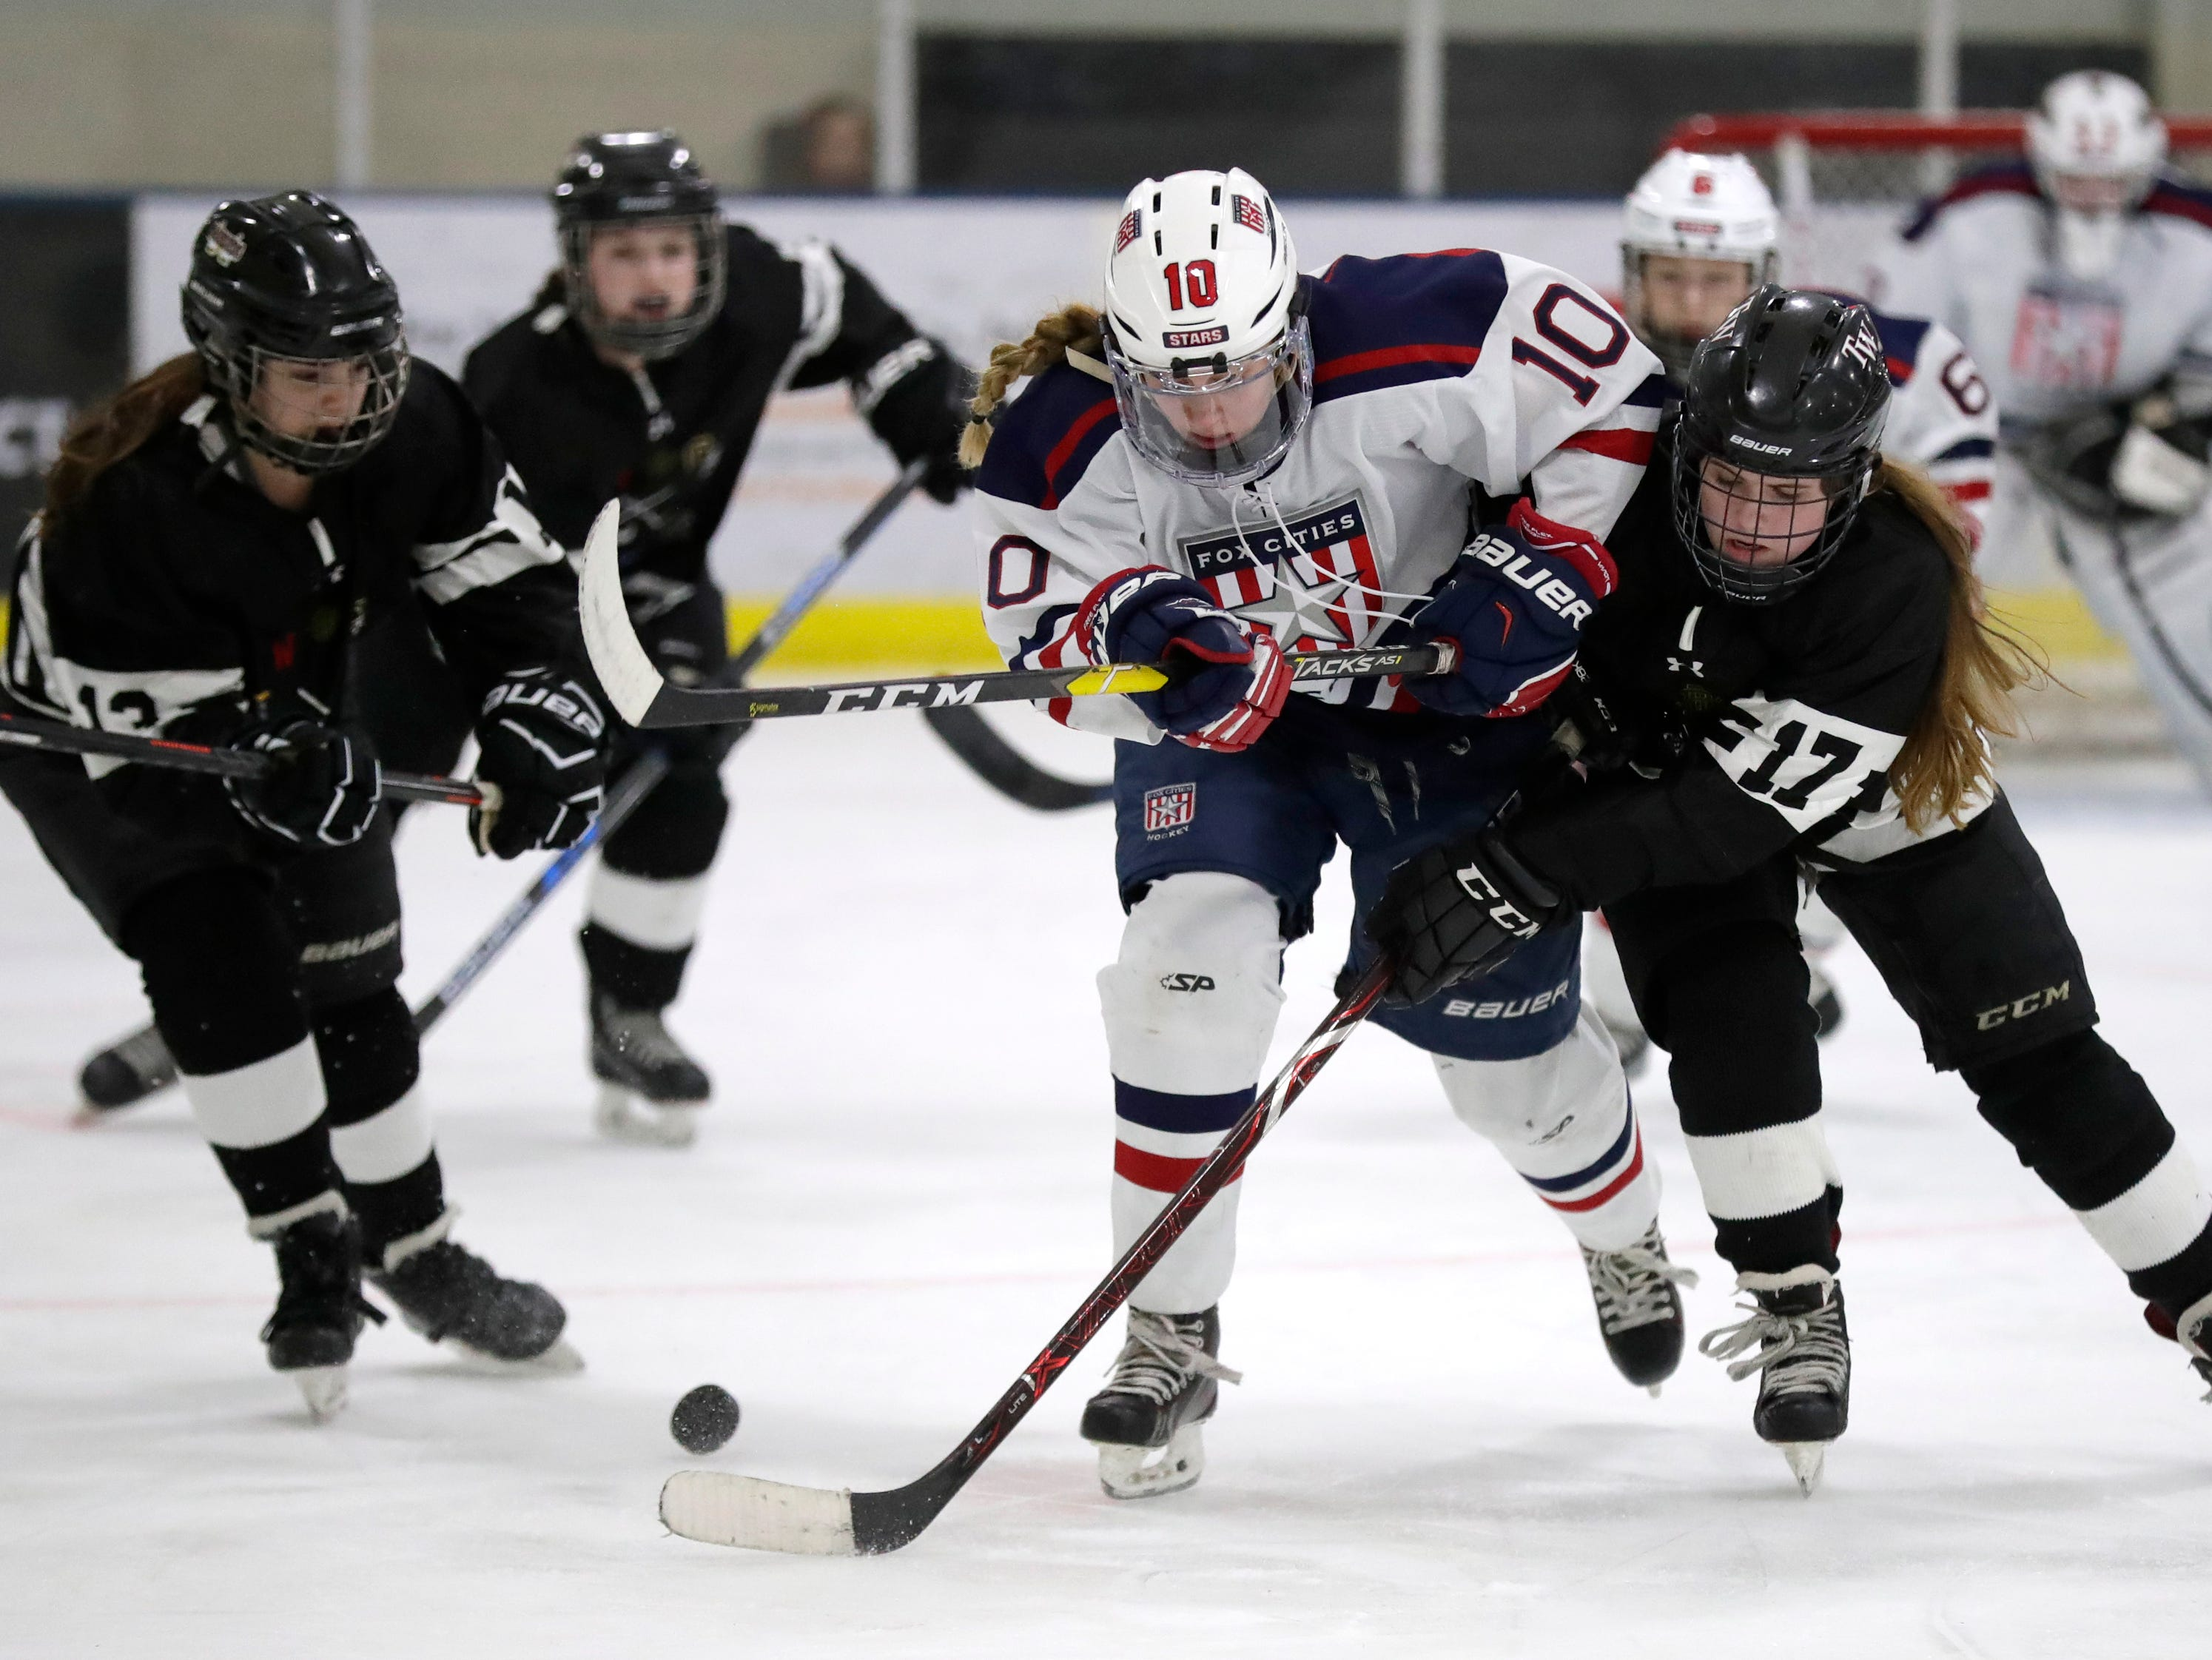 Fox Cities Stars' Madelynn Jablonski (10) battles for control of the puck against the Warbirds' Hattie Verstegen (17) during their girls hockey game Thursday, January 10, 2019, at Tri-County Ice Arena in Fox Crossing, Wis. 